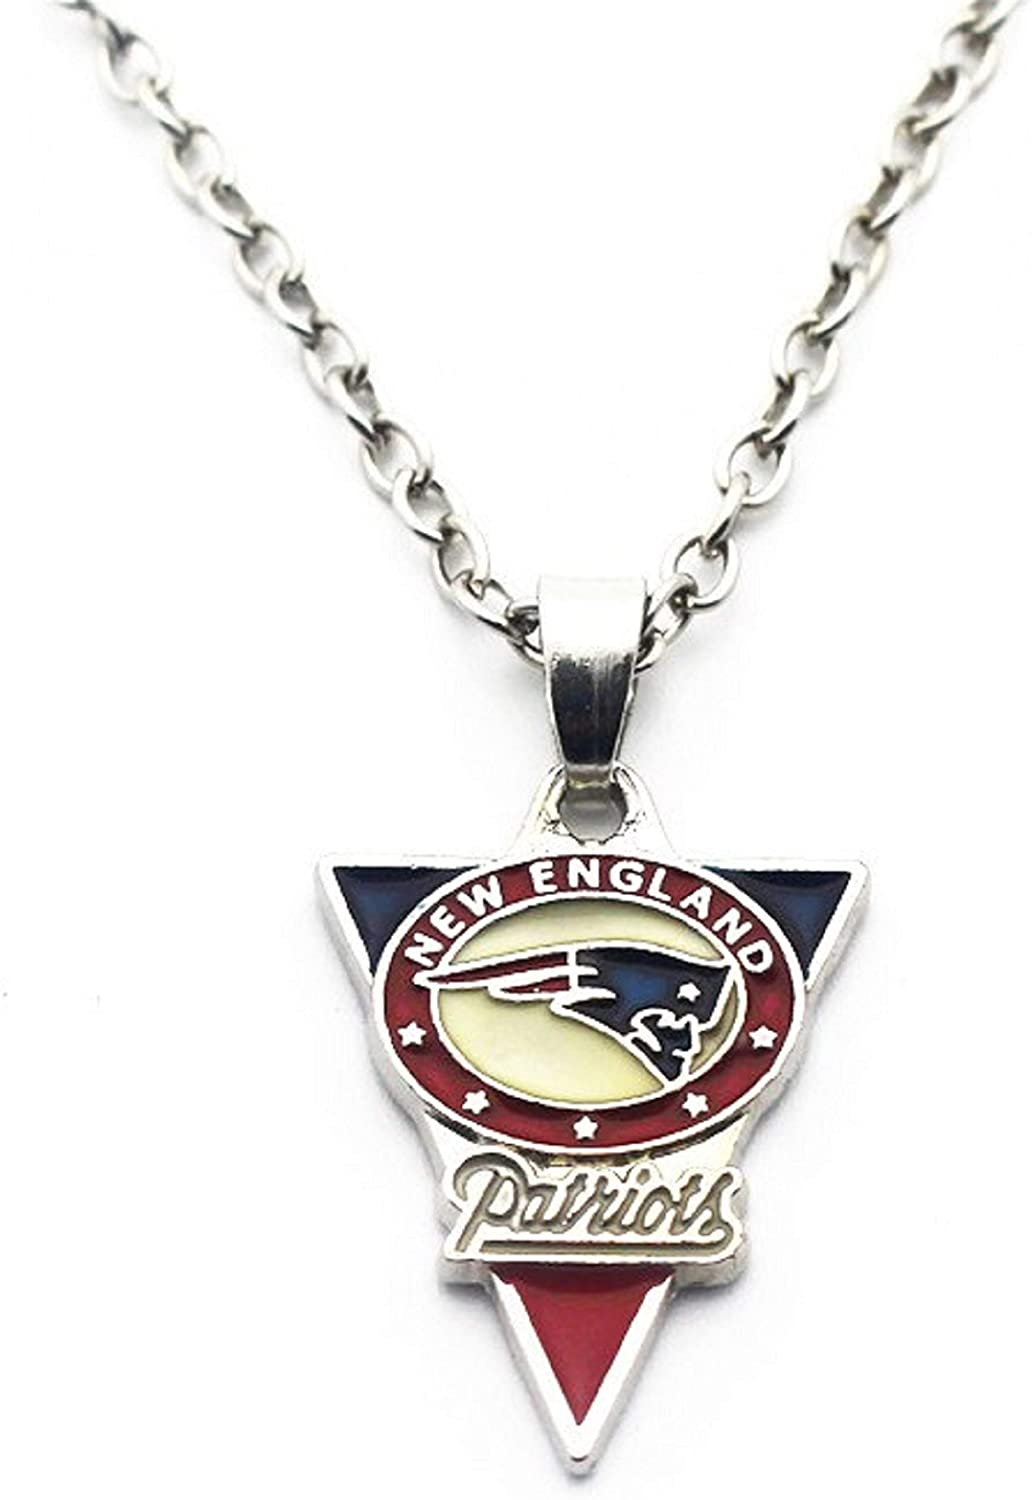 BAS New England Patriots Necklace with Triangle Pendant with 20 inch Stainless Steel Chain Necklace